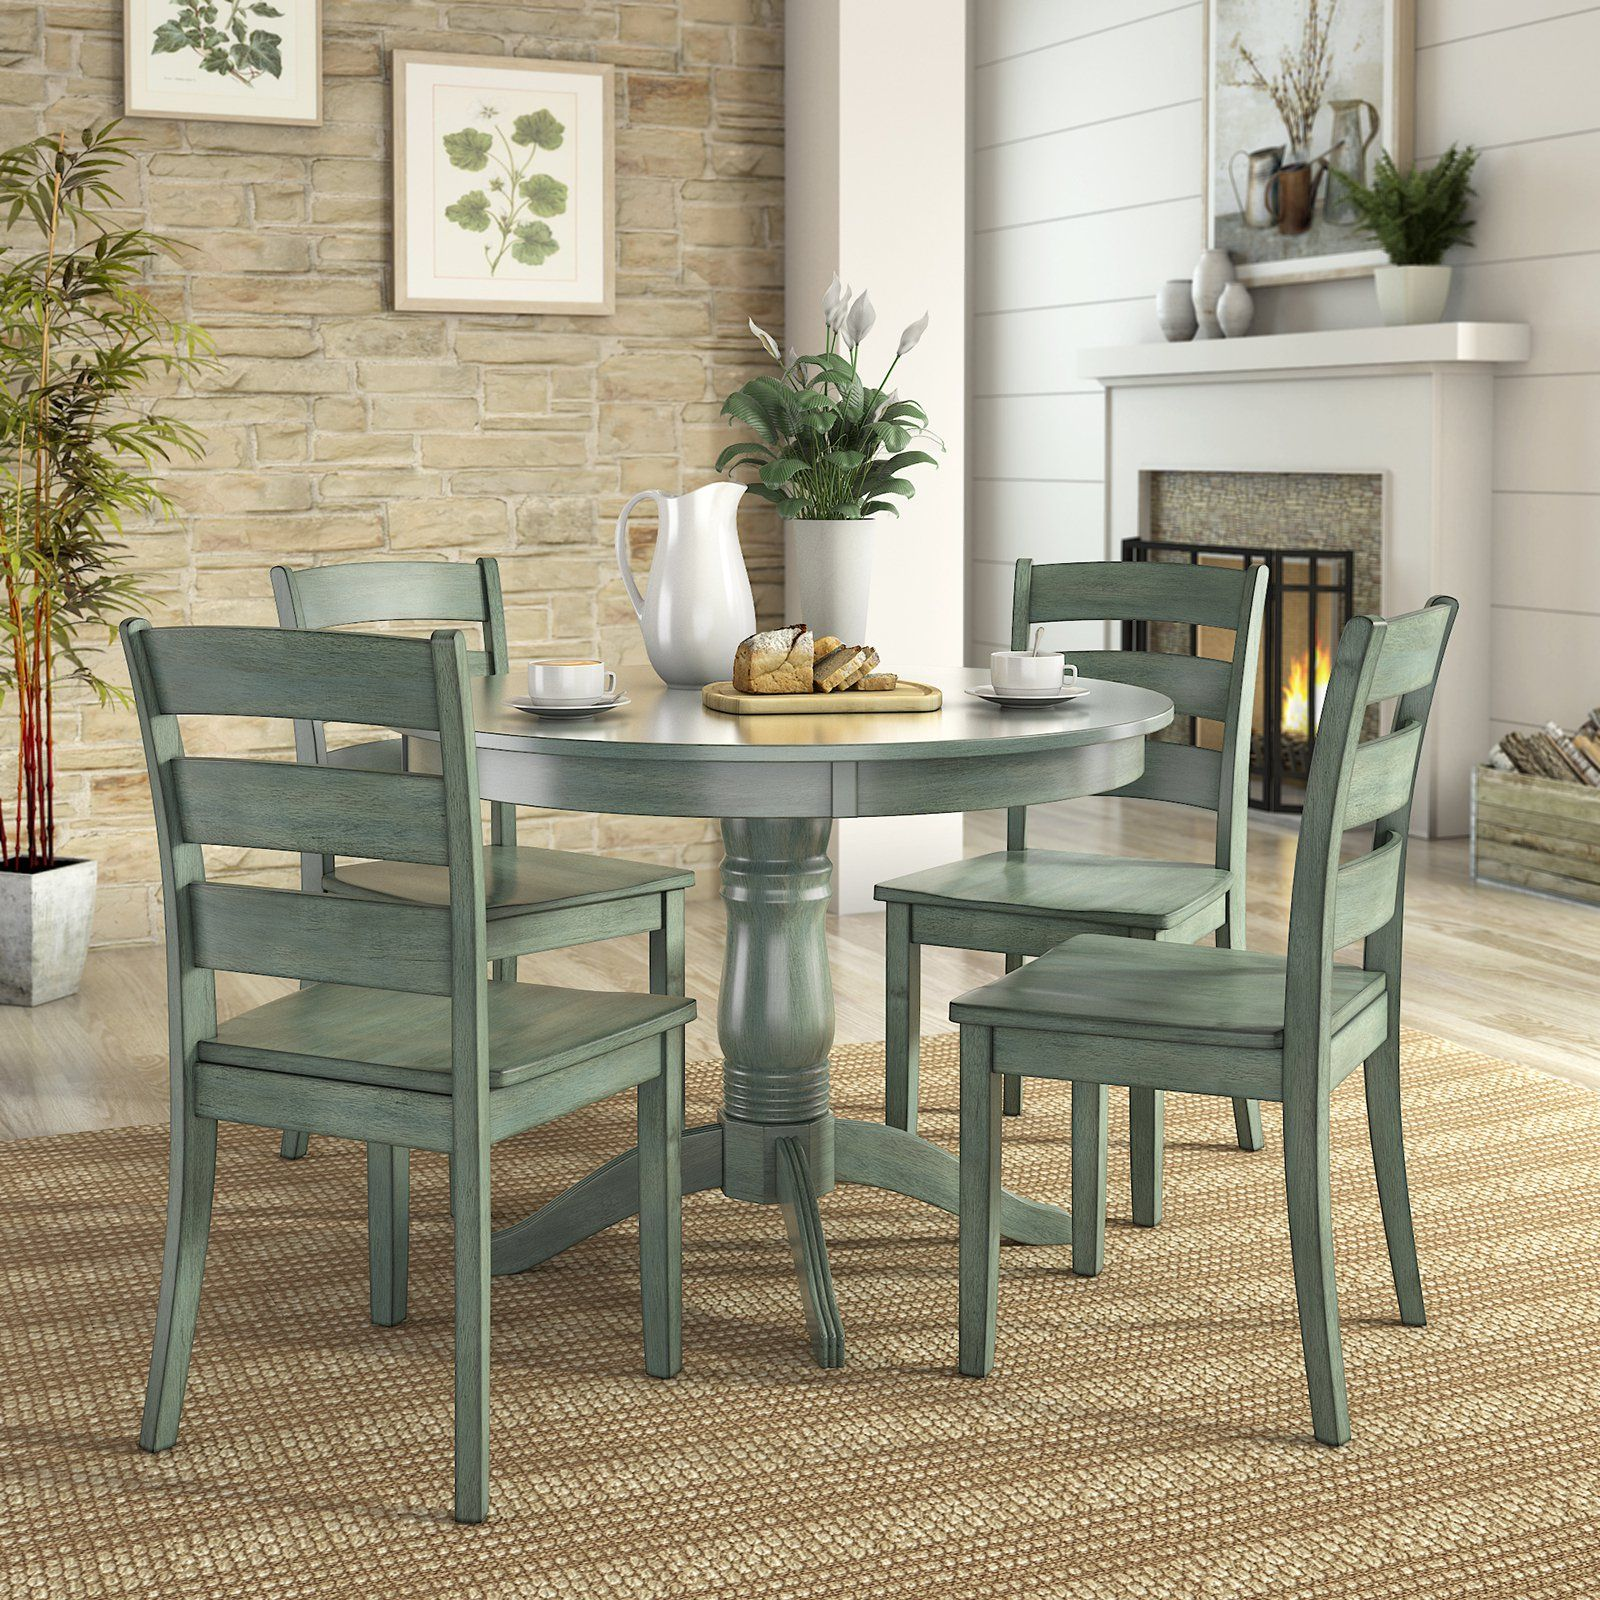 Weston Home Lexington 5 Piece Round Dining Table Set with Ladder